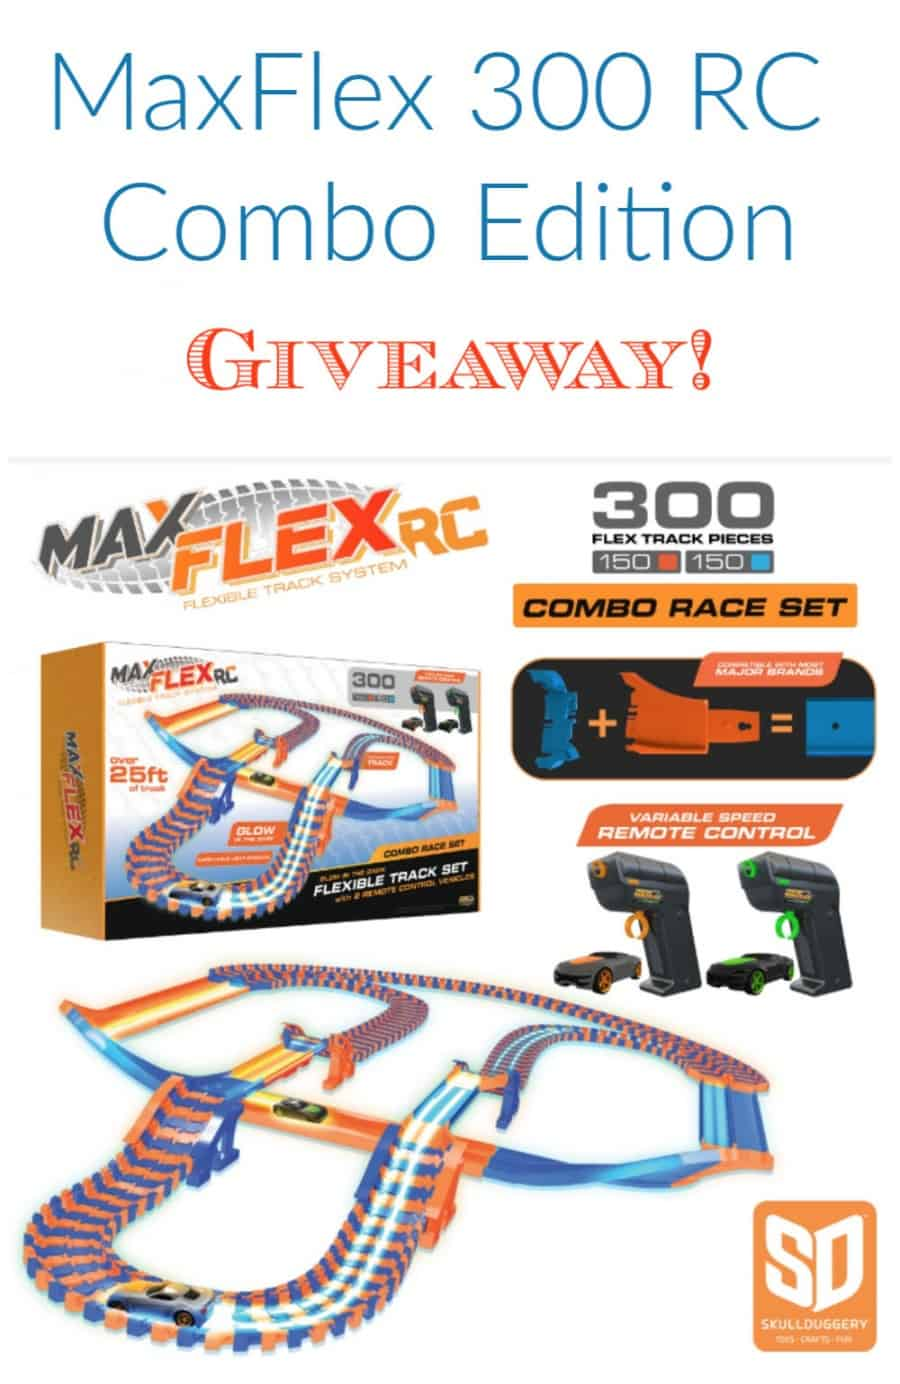 Max Flex RV Flexible Track System Giveaway